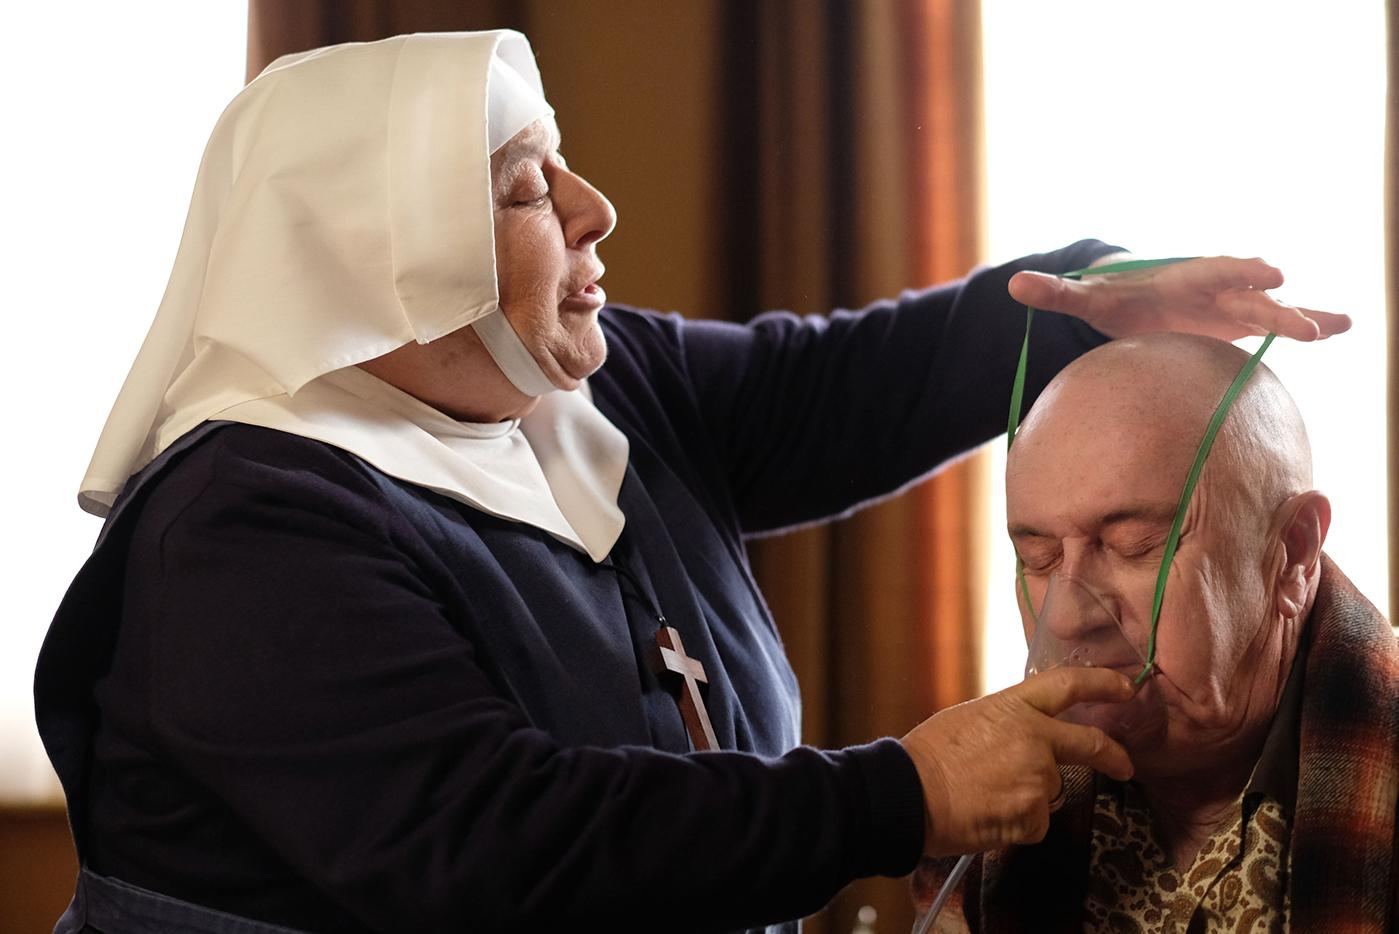 Sister Mildred (MIRIAM MARGOLYES), Joe Brittall (DENNIS BANKS) in Call the Midwife. Photo: BBC/Neal Street Productions